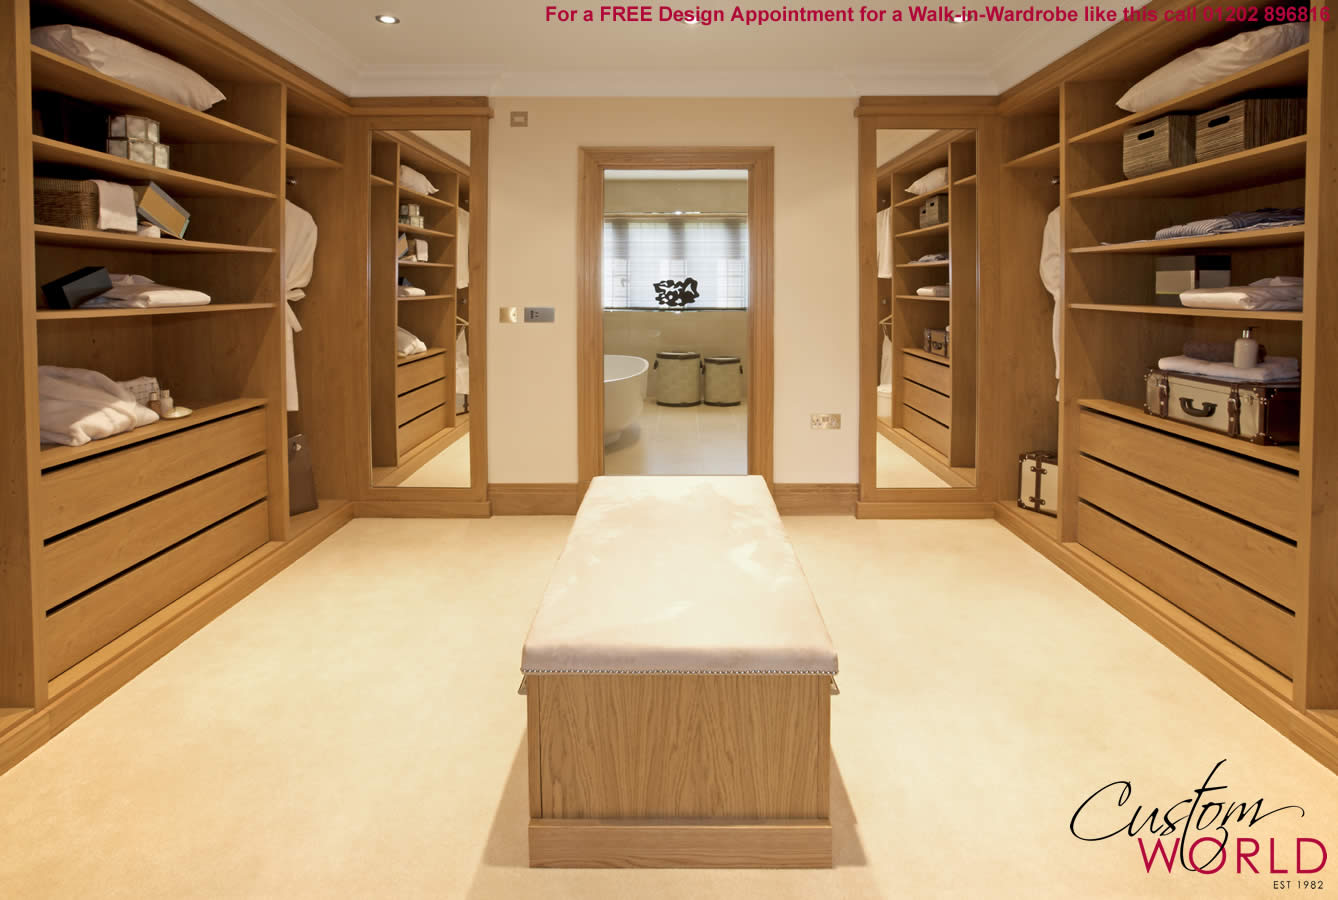 Built in walk in wardrobes bespoke walk in wardrobe designs for Bedroom built in wardrobe designs